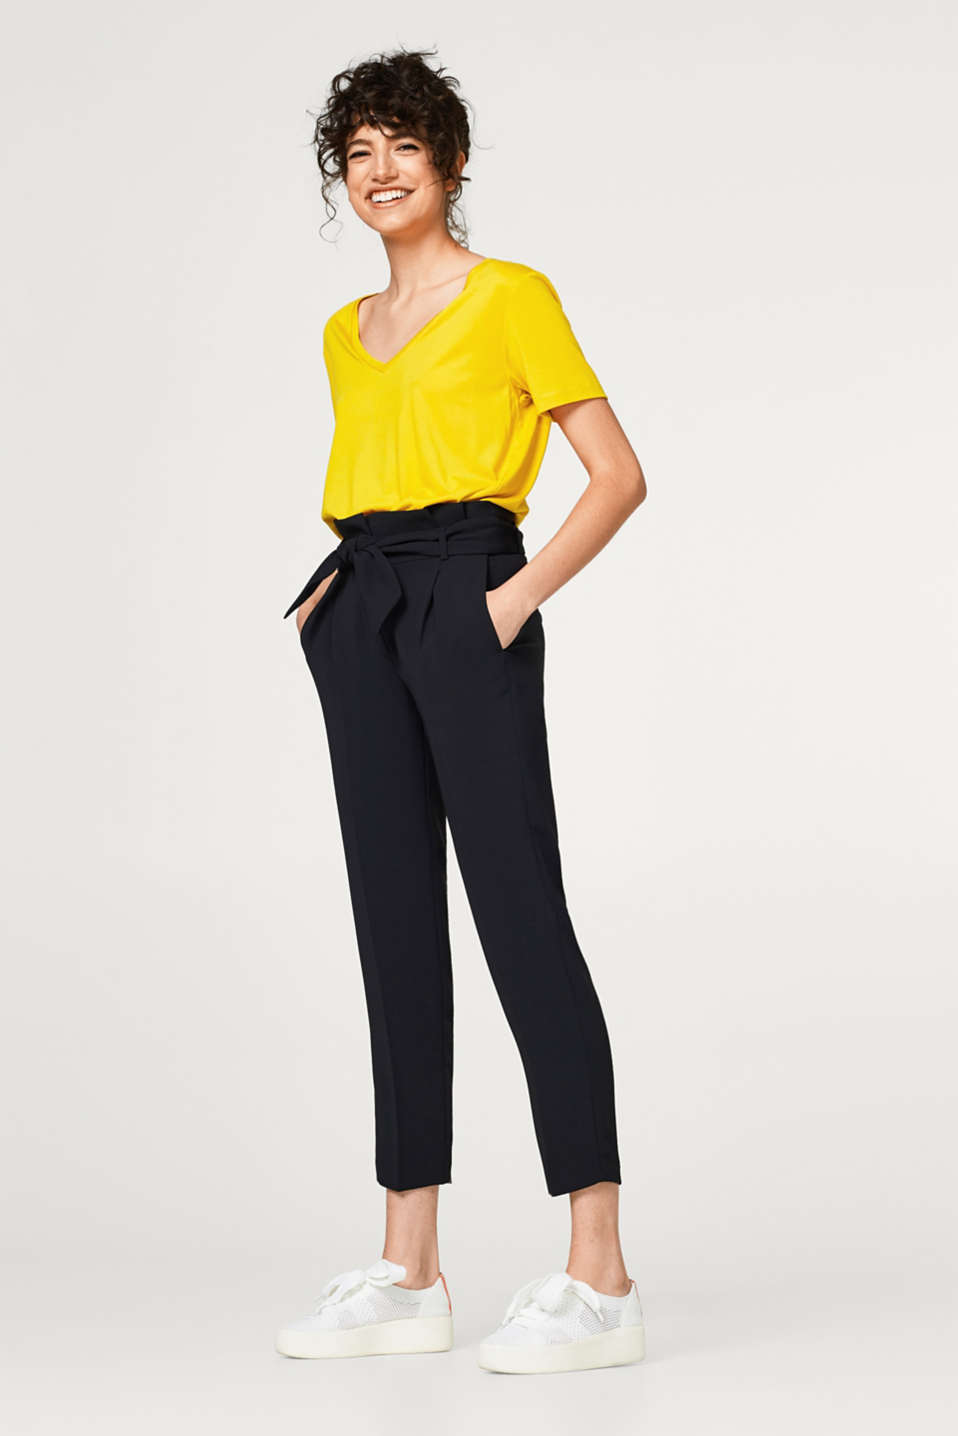 Flowing trousers with a high paperbag waistband